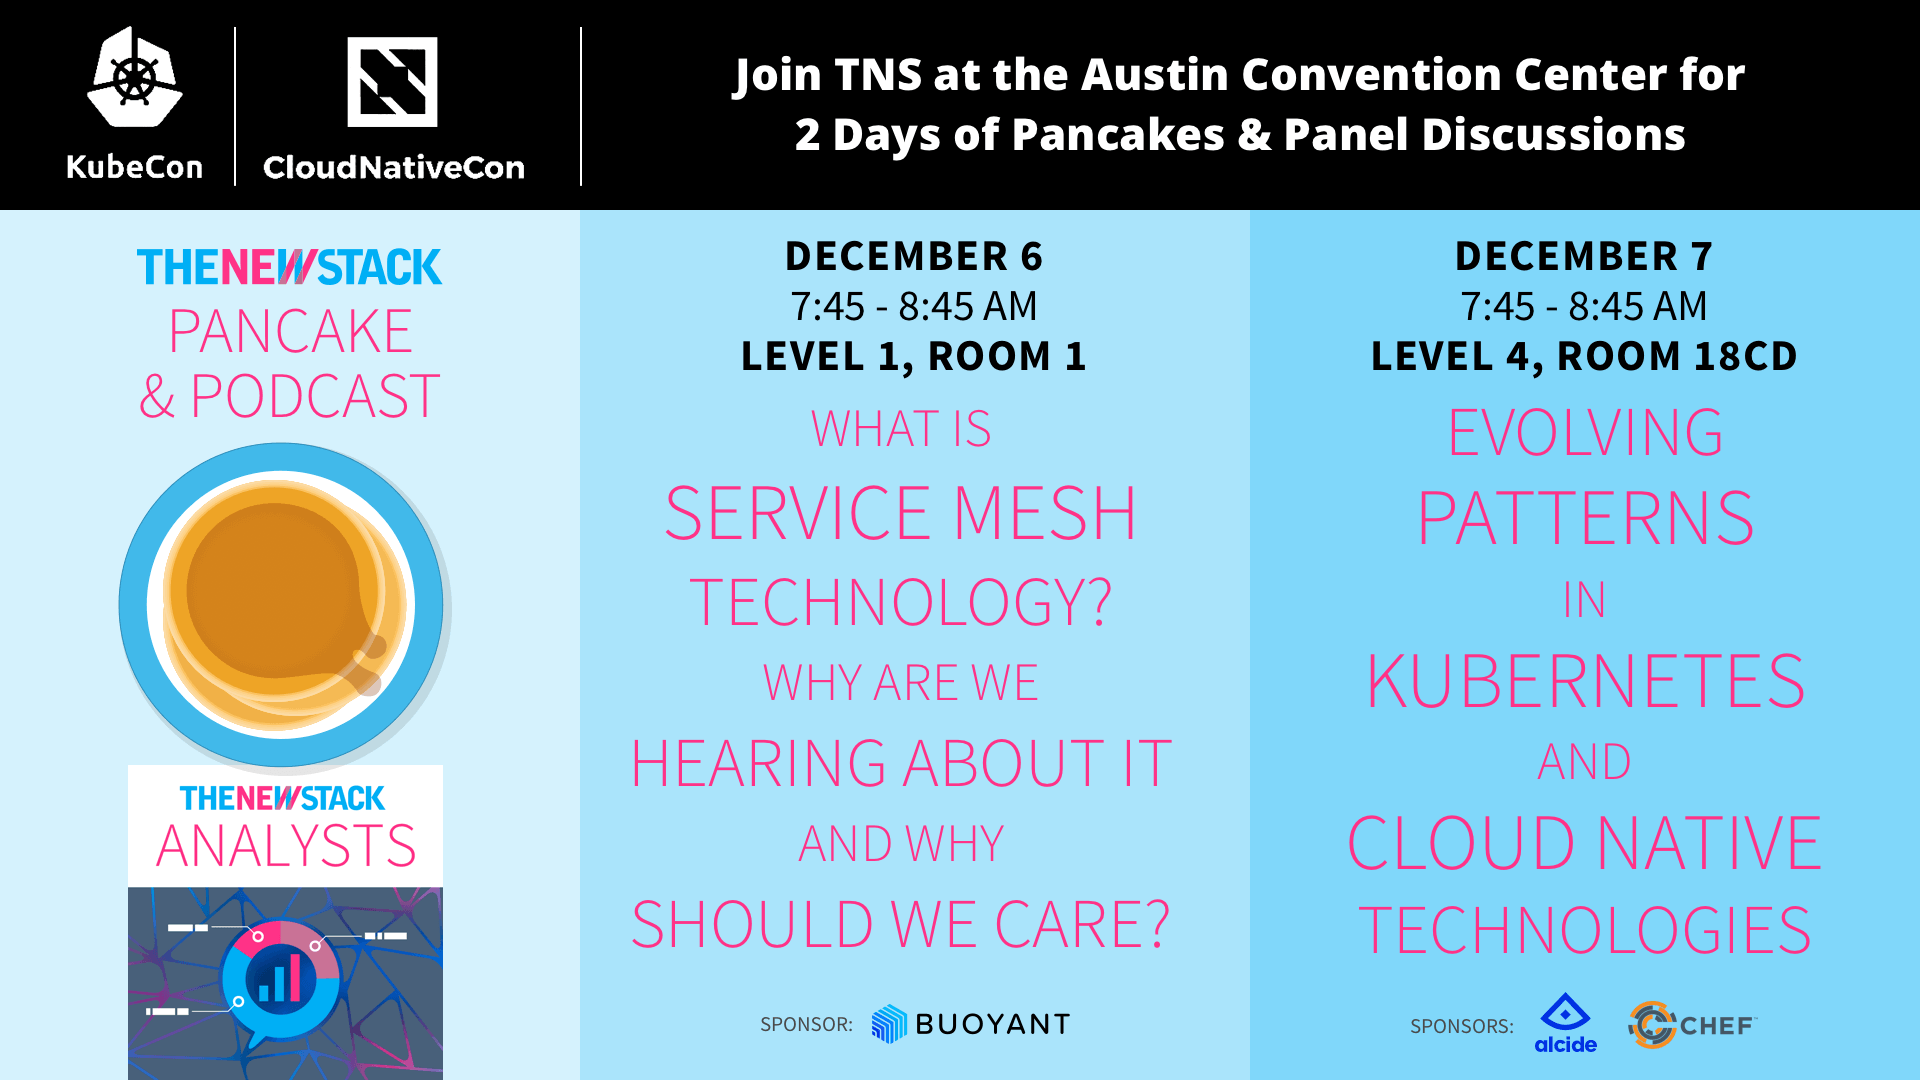 http://events.linuxfoundation.org/events/kubecon-and-cloudnativecon-north-america/extend-the-experience/the-newstack-pancake-breakfast-amp-podcast